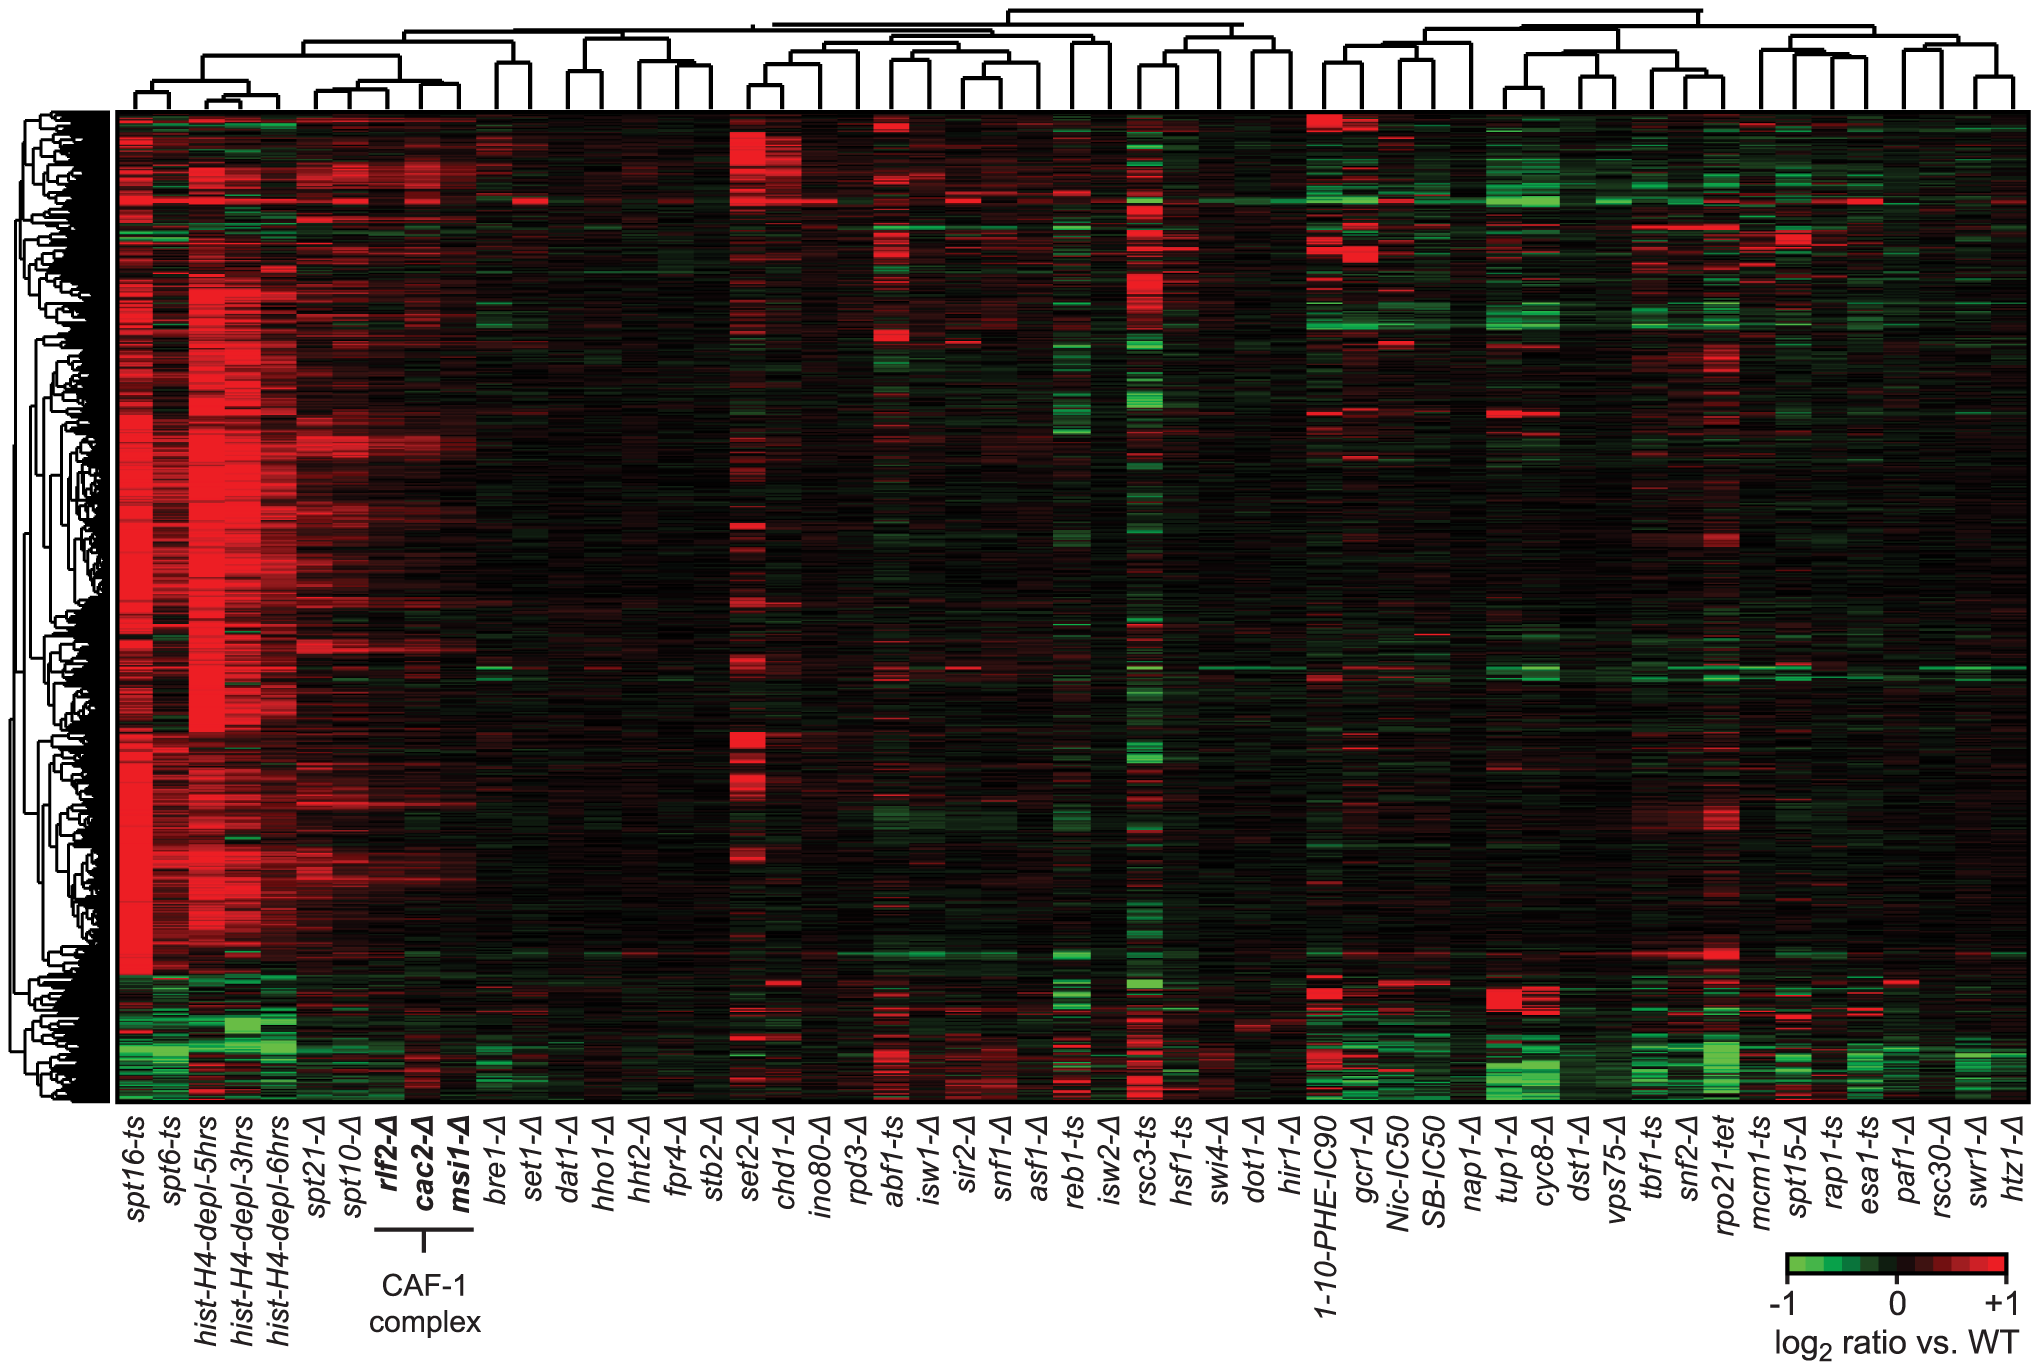 Cryptic antisense transcripts in CAF-1 complex mutants.